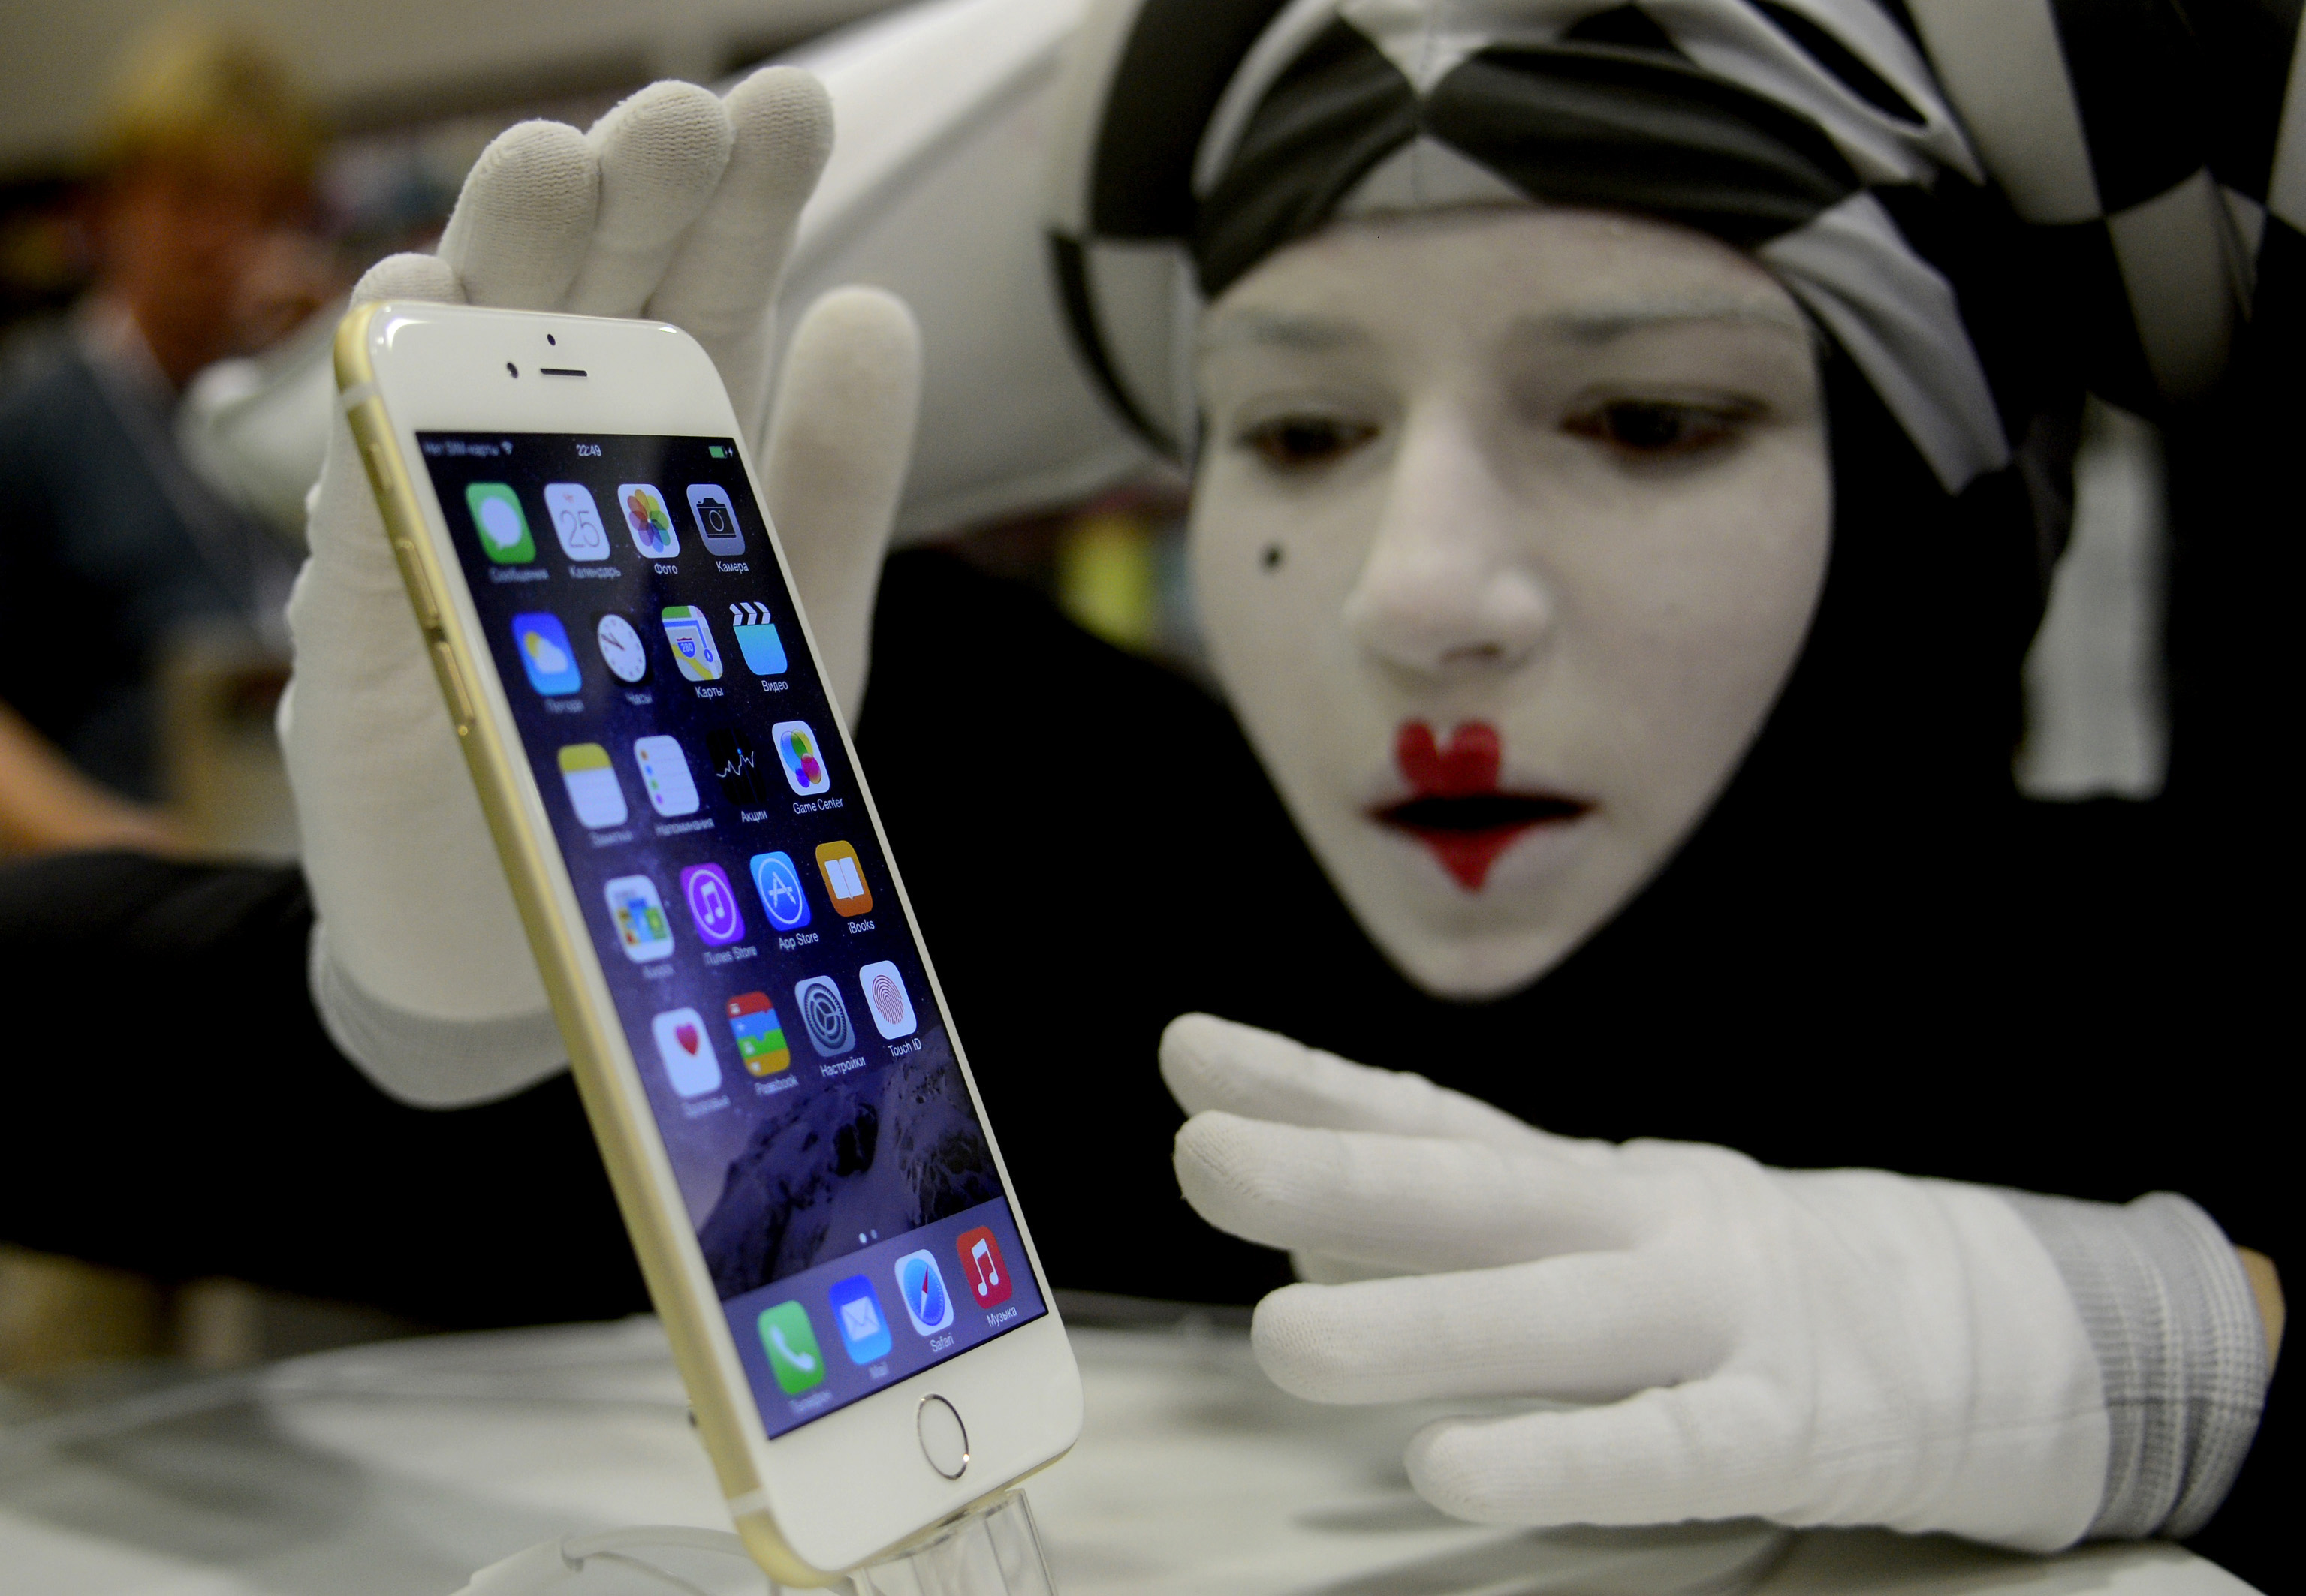 A white-faced mime strokes an iPhone